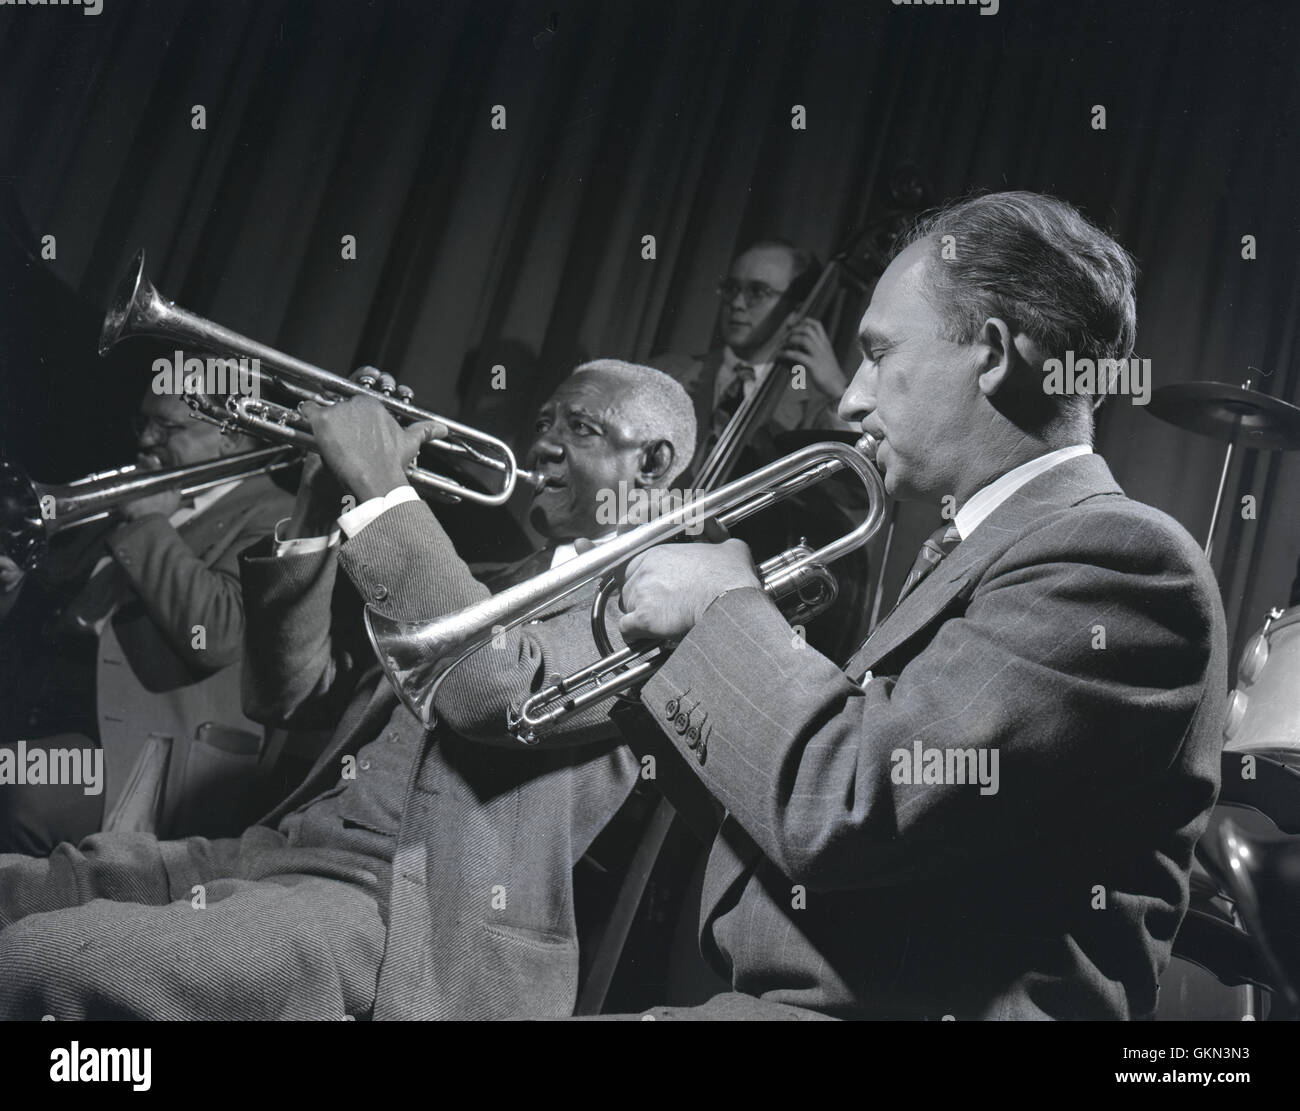 Bunk Johnson with the Doc Evans' band. Doc Evans is on trumpet, Don Thompson on trombone, and Cliff Johnson on bass. - Stock Image